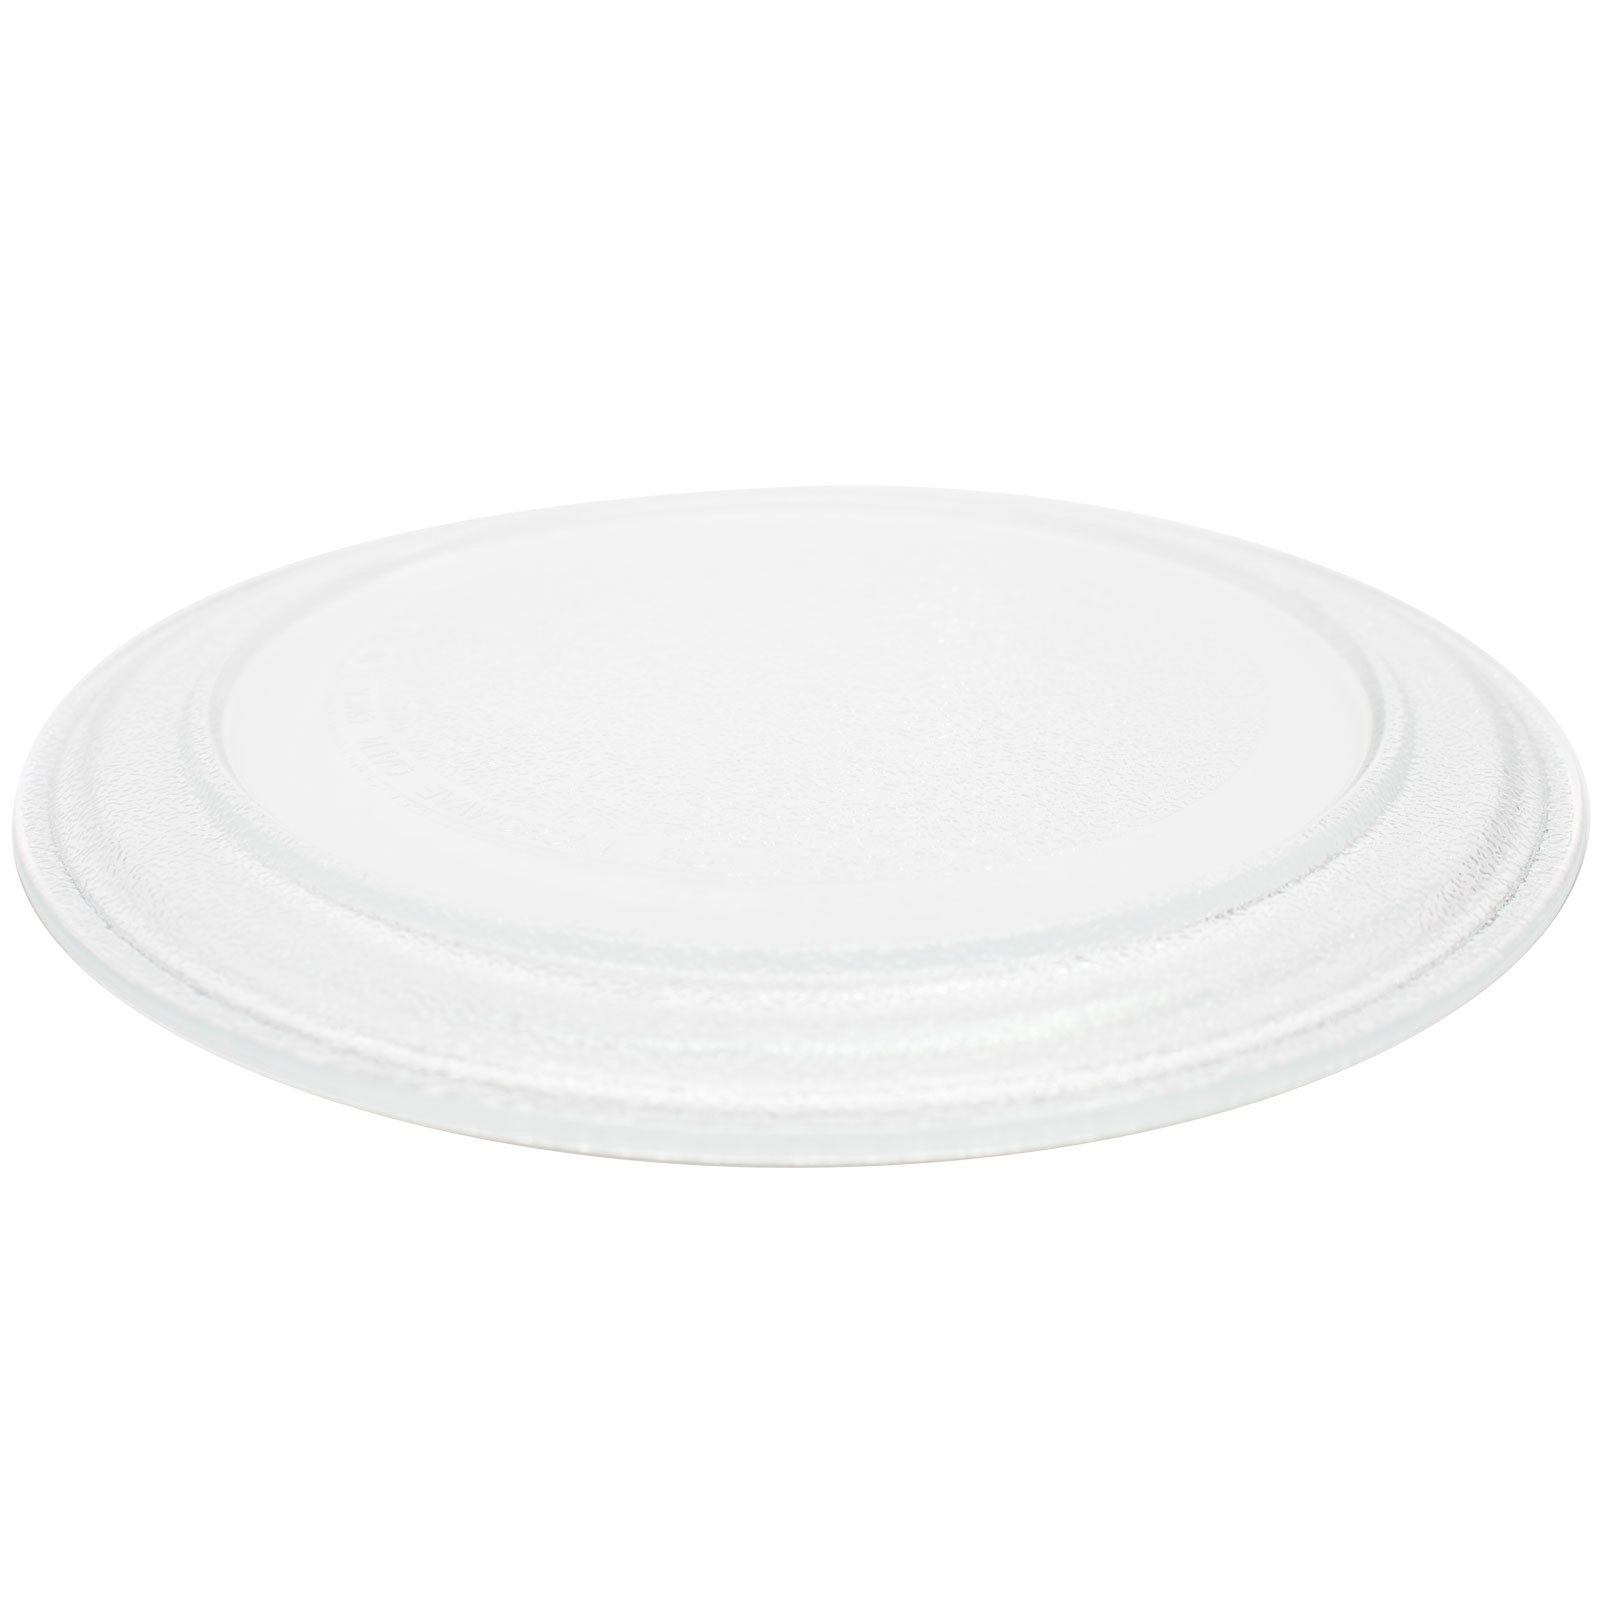 """Replacement Kenmore 72169072900 Microwave Glass Plate - Compatible Kenmore 3390W1A035D Microwave Glass Turntable Tray - 9 5/8"""" (245 mm) - image 3 de 4"""